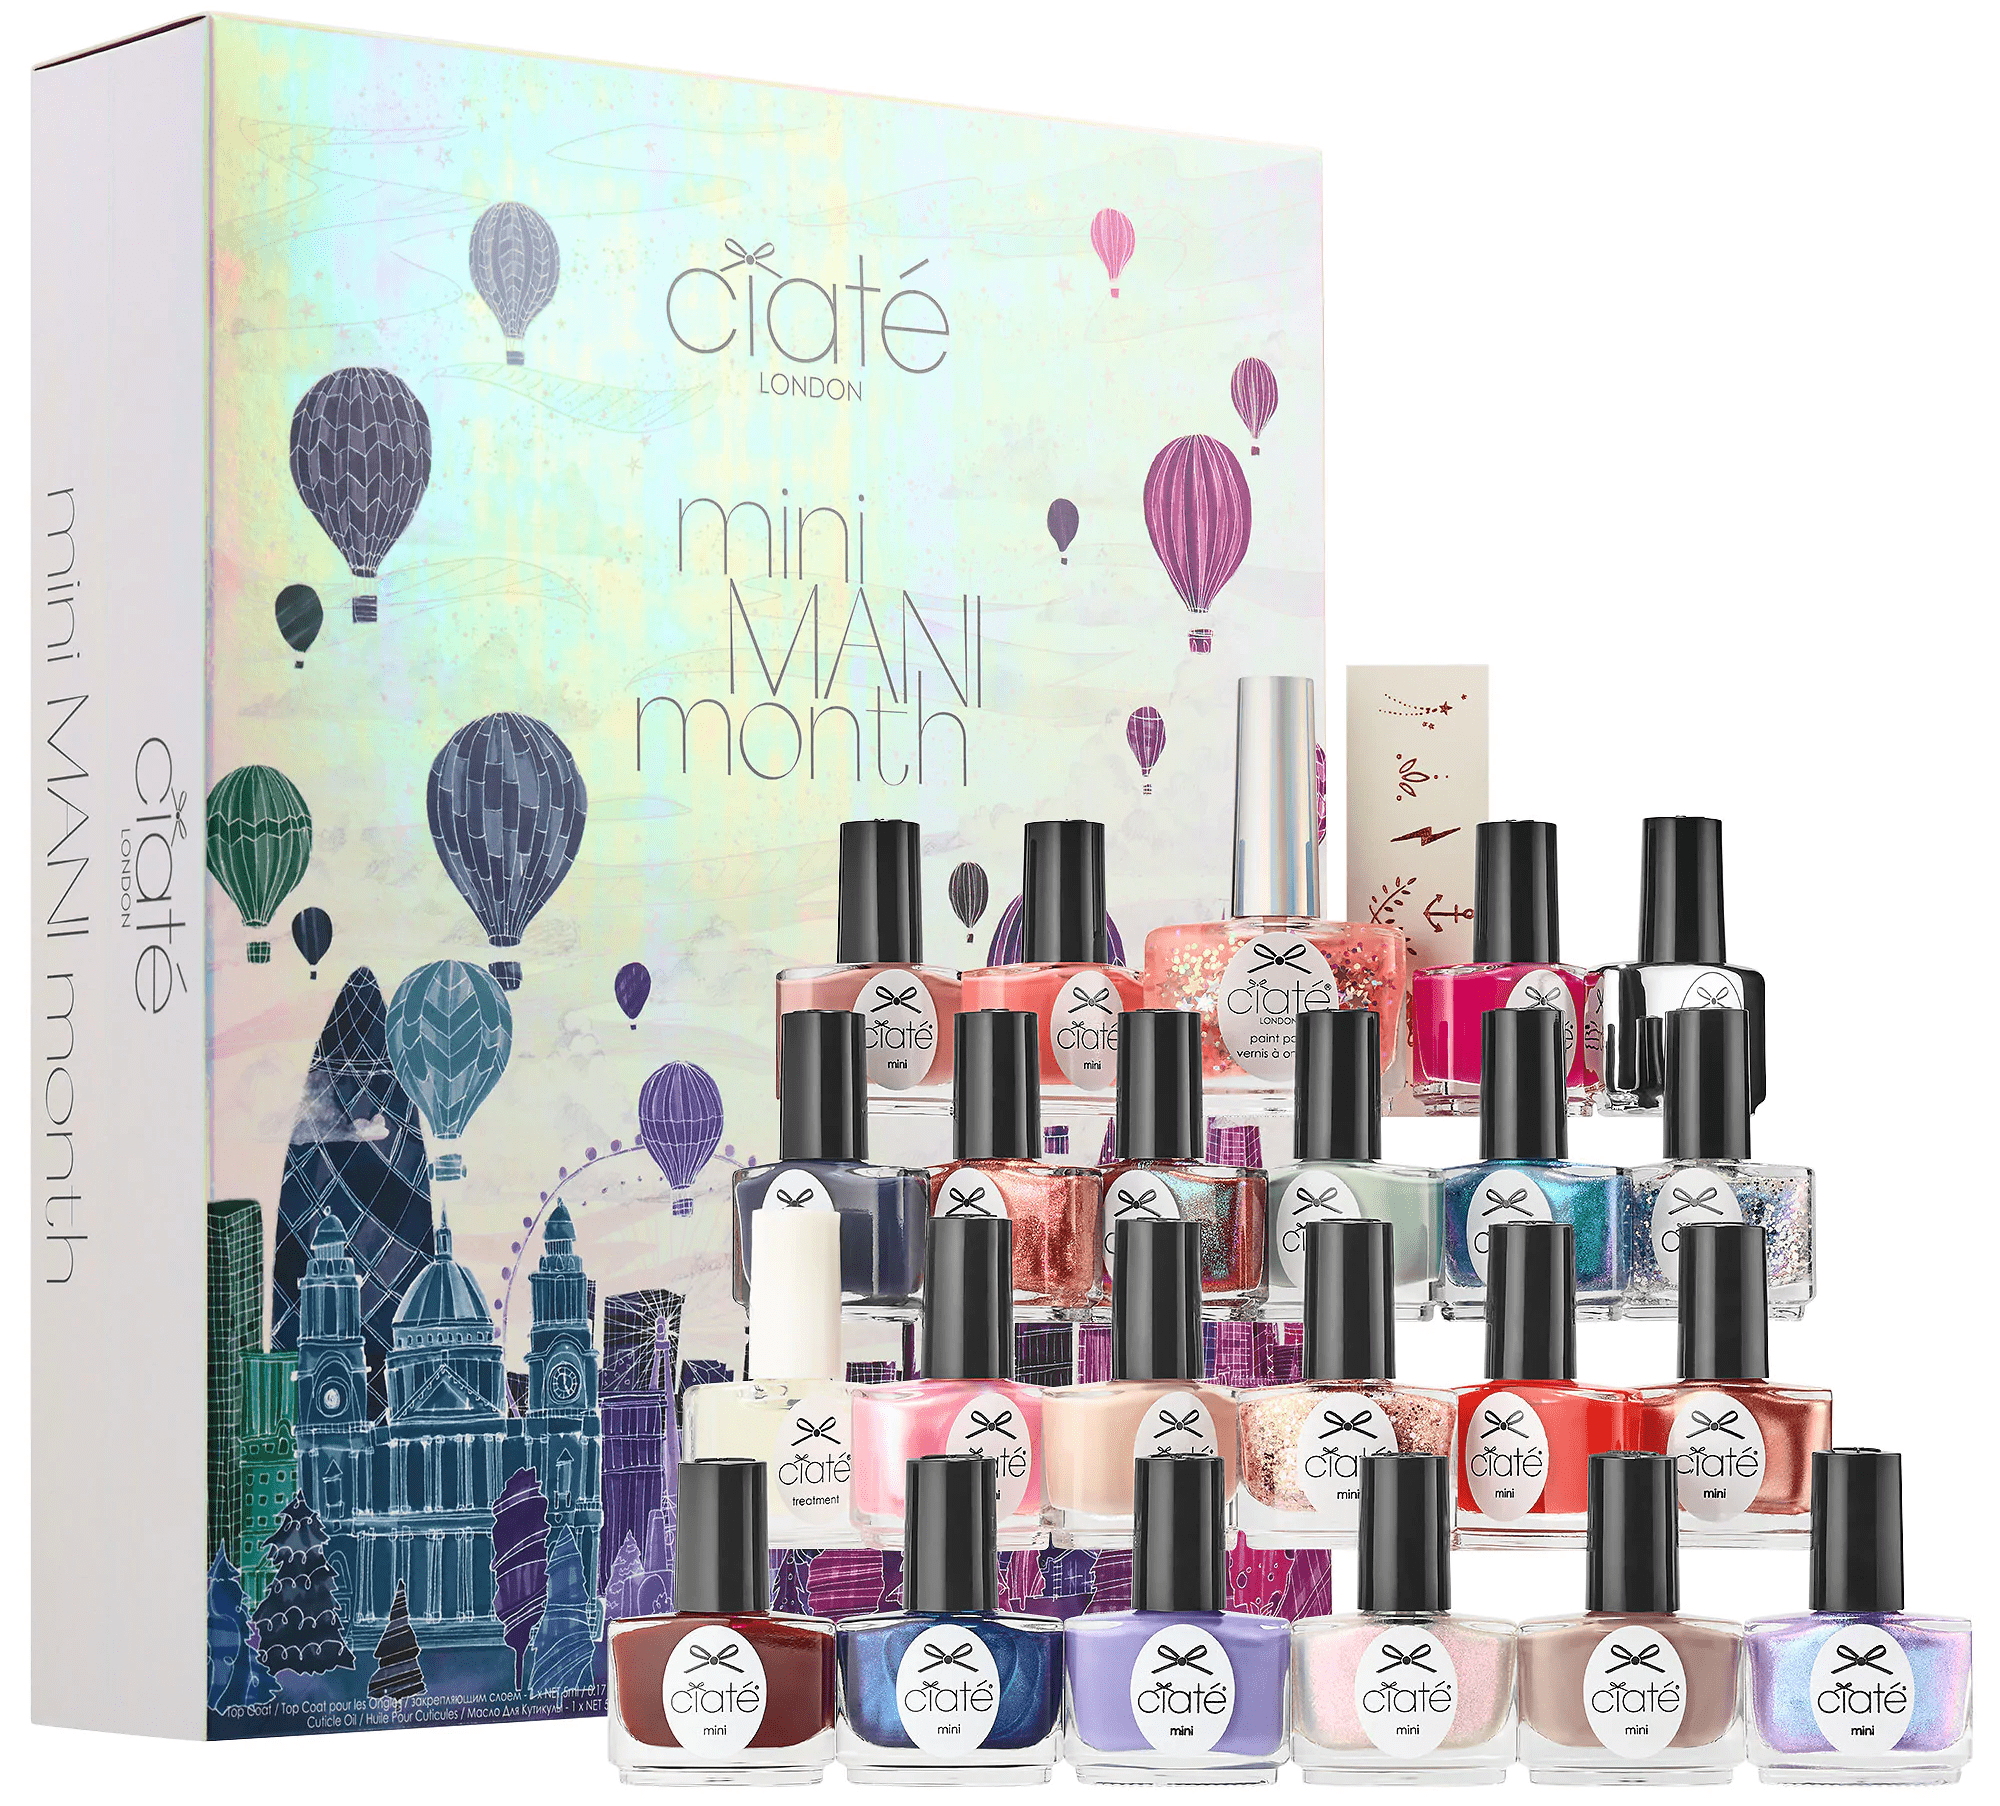 Ciate Mini Mani Month 2018 - The LDN Diaries